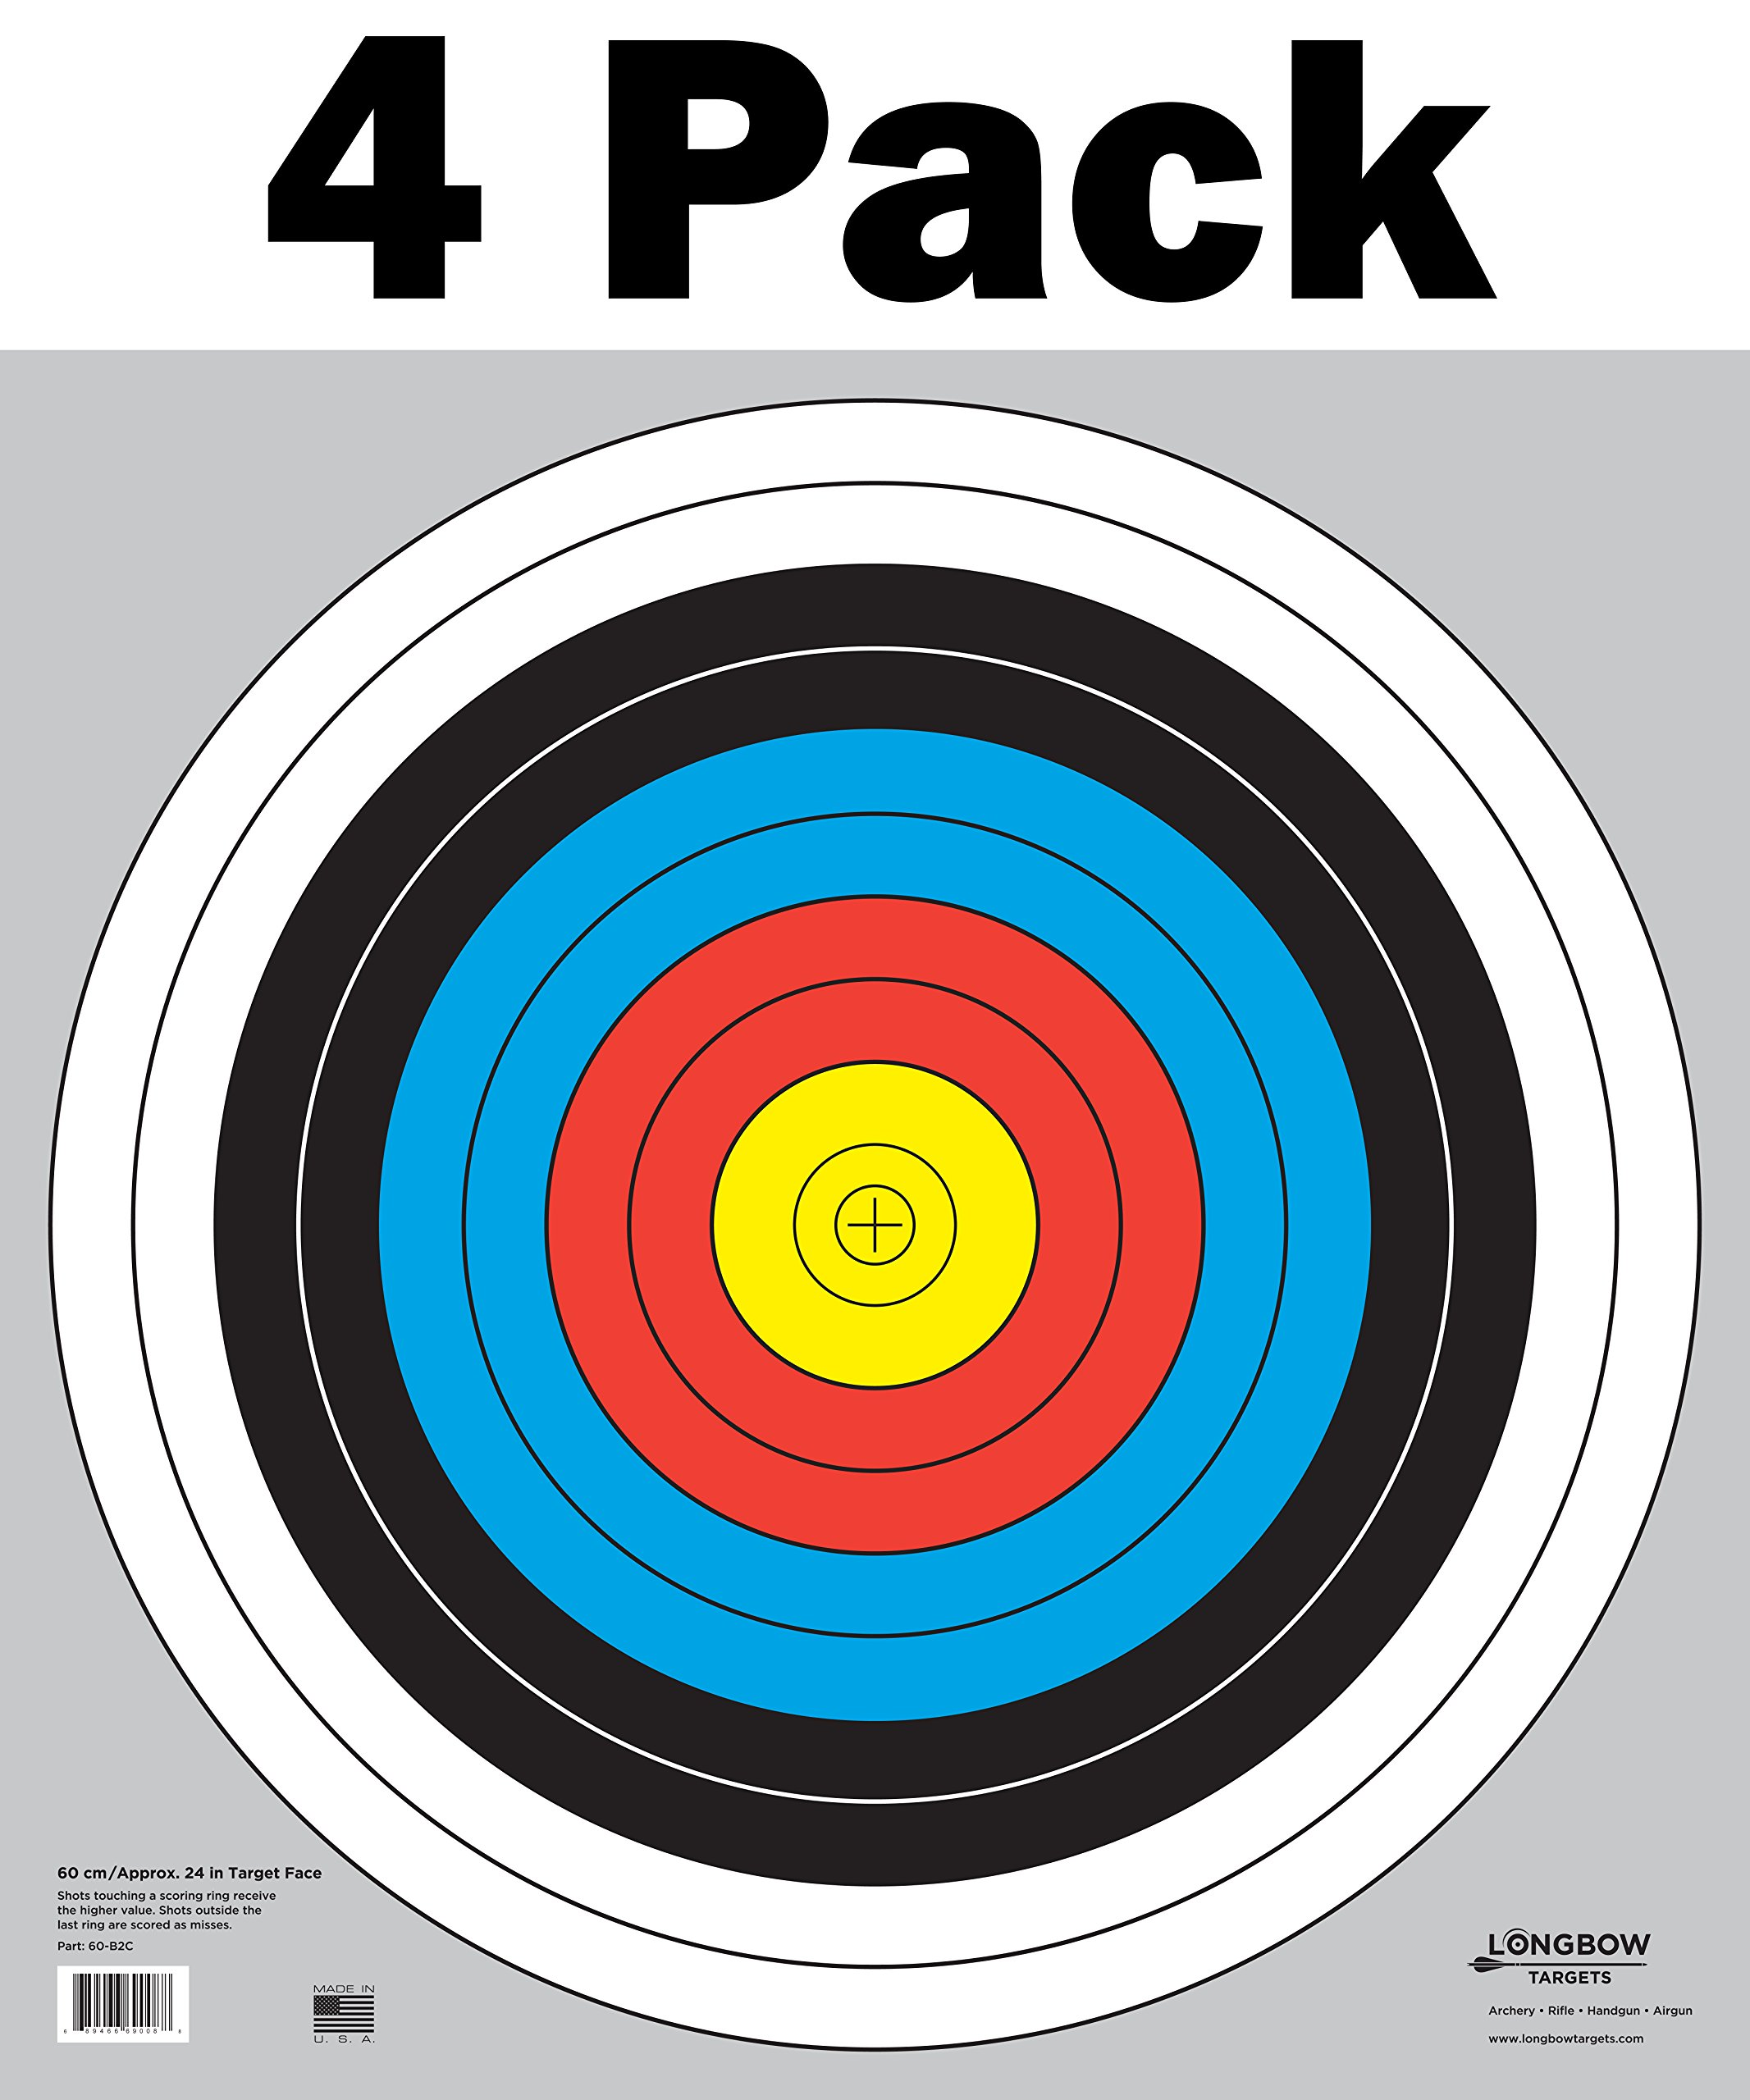 60 cm / 24 in Bullseye Archery (10 Ring) and Gun Targets by Longbow Targets (4 Pack)